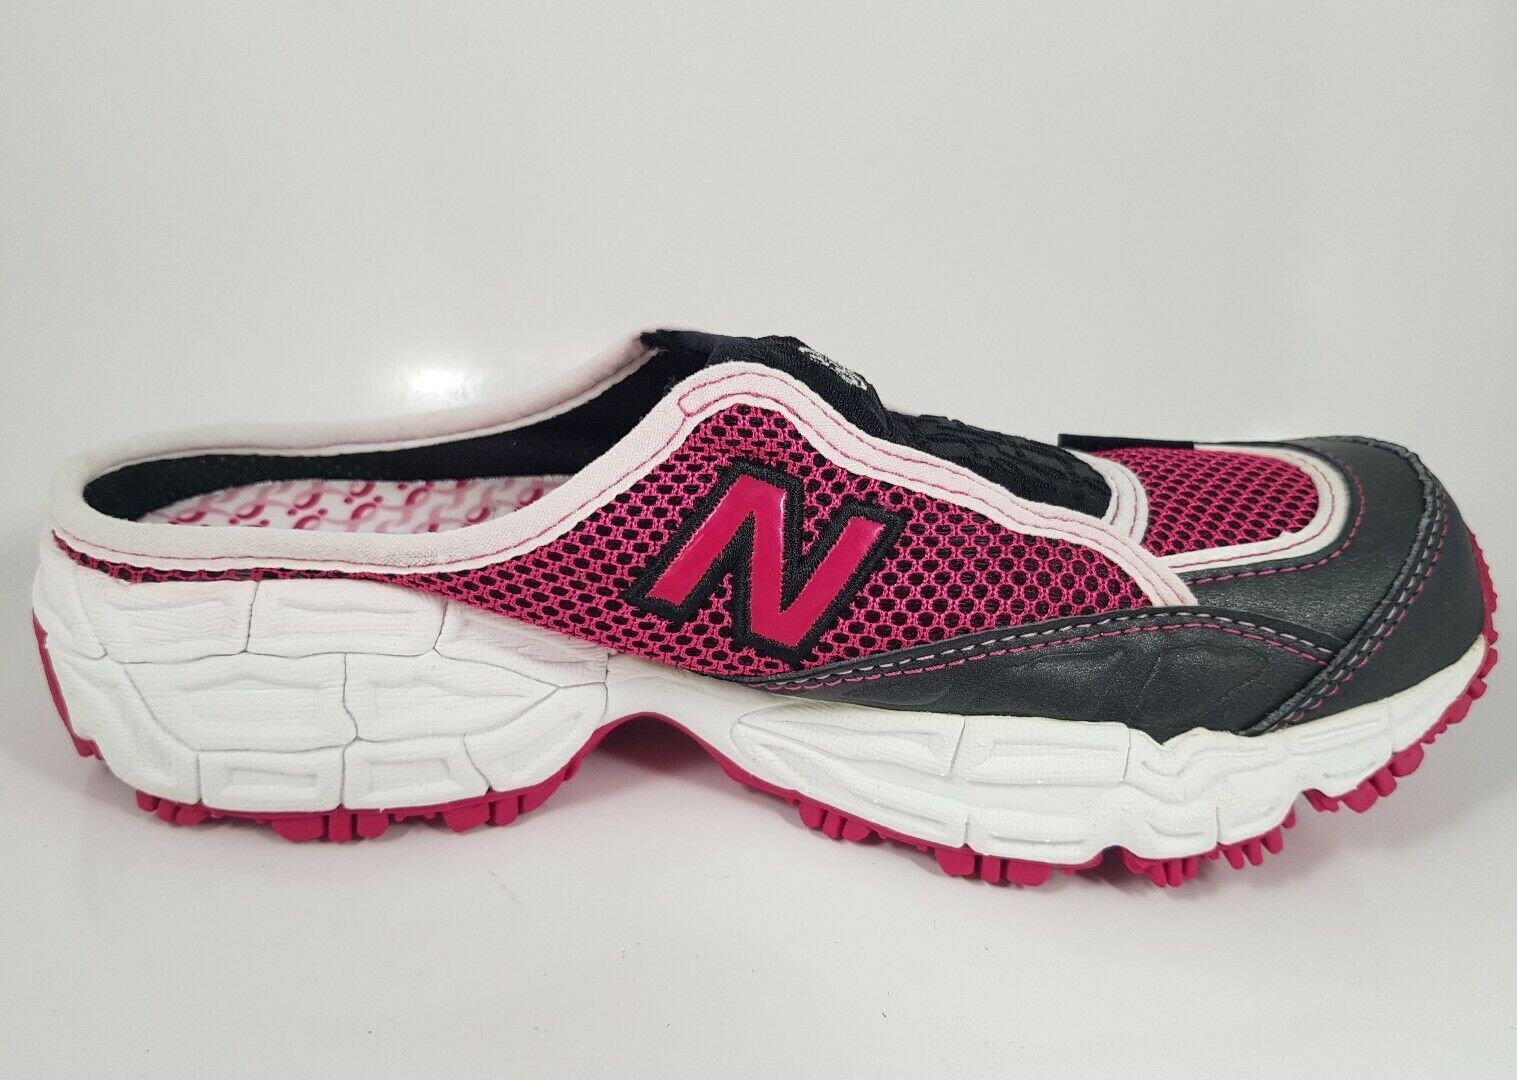 NIB NEW BALANCE W801PR GRAY PINK LEATHER MESH SANDALS SLIDE SNEAKERS B MEDIUM